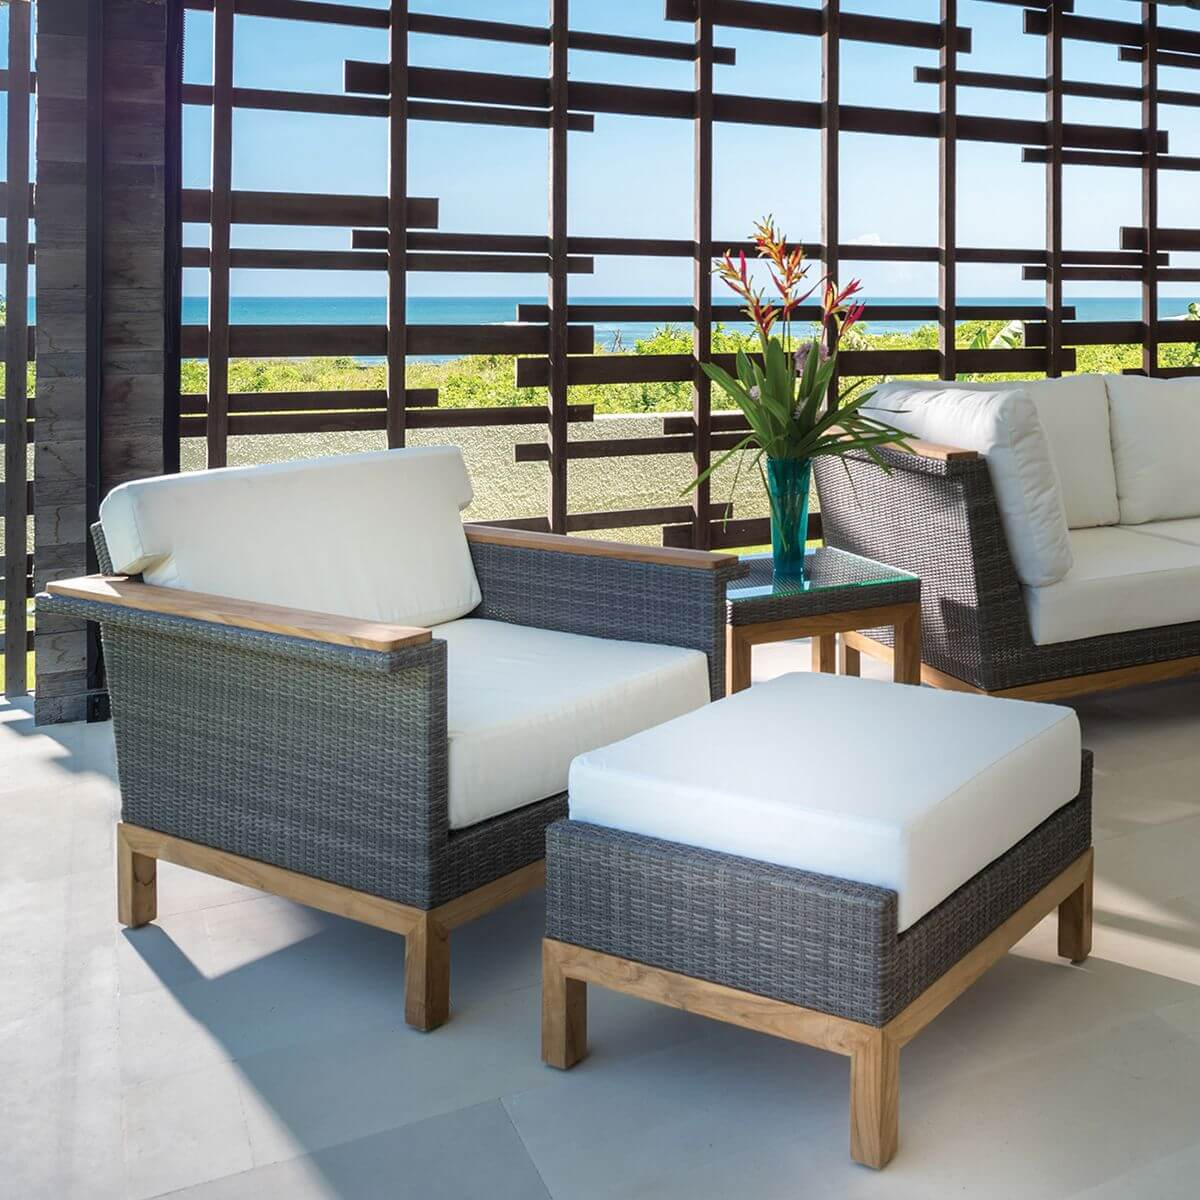 Casual Living Patio & Poolside | furniture-wicker on Casual Living Patio id=85748